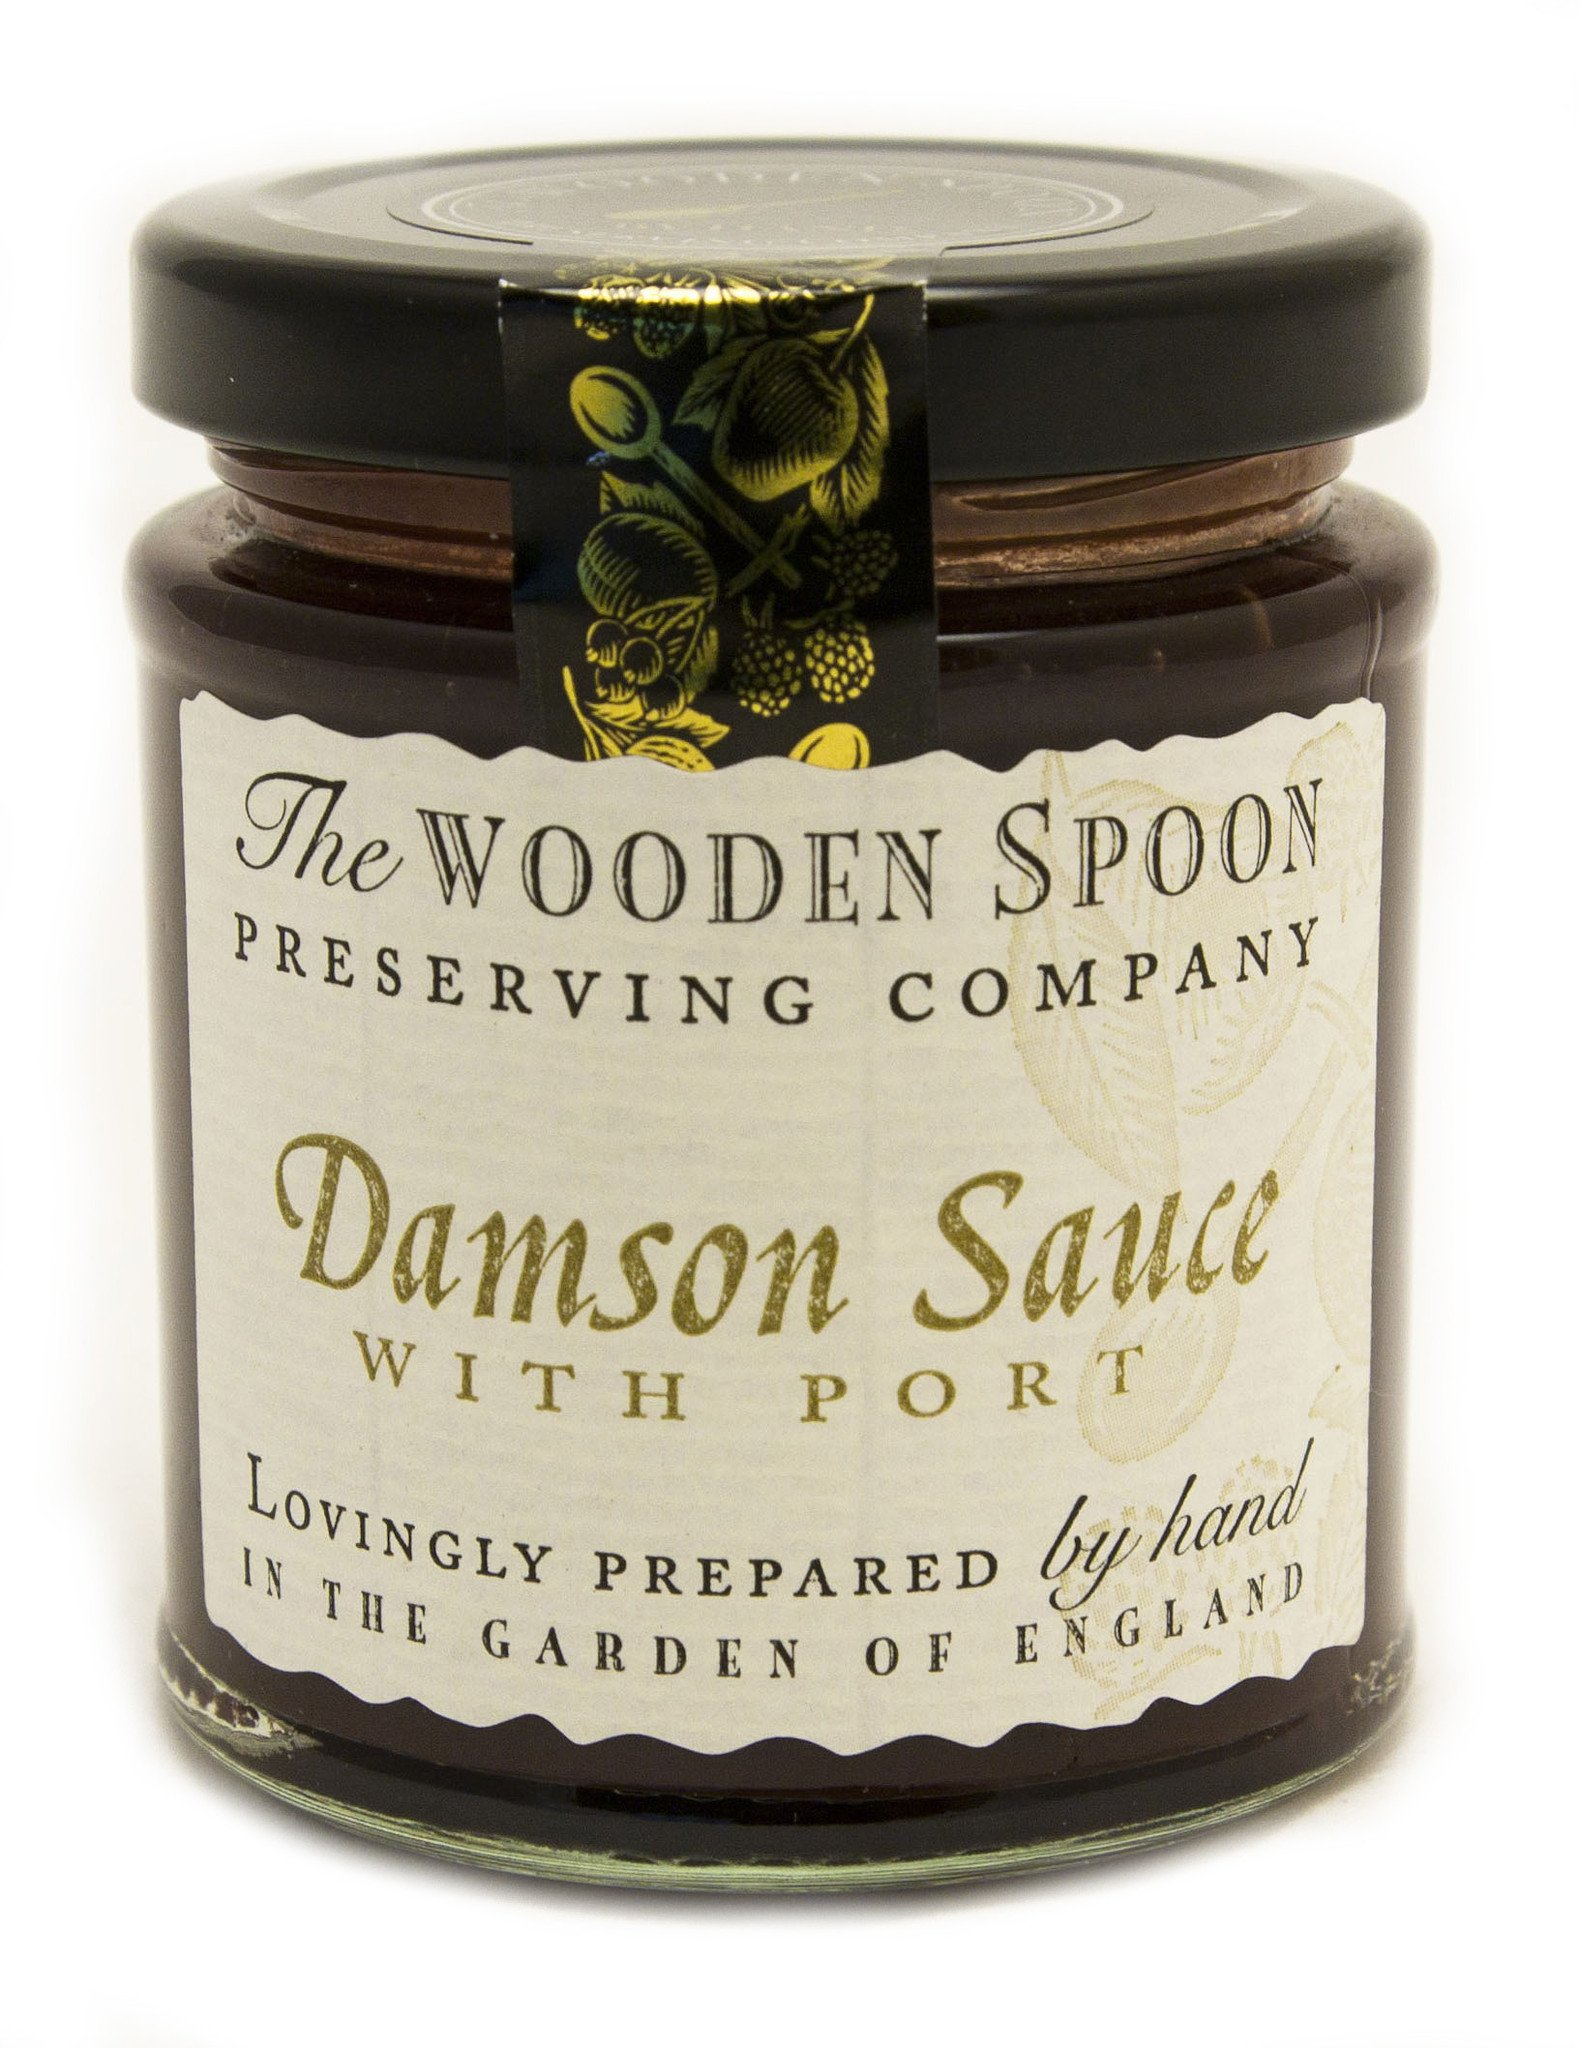 Damson - Sauce with Port